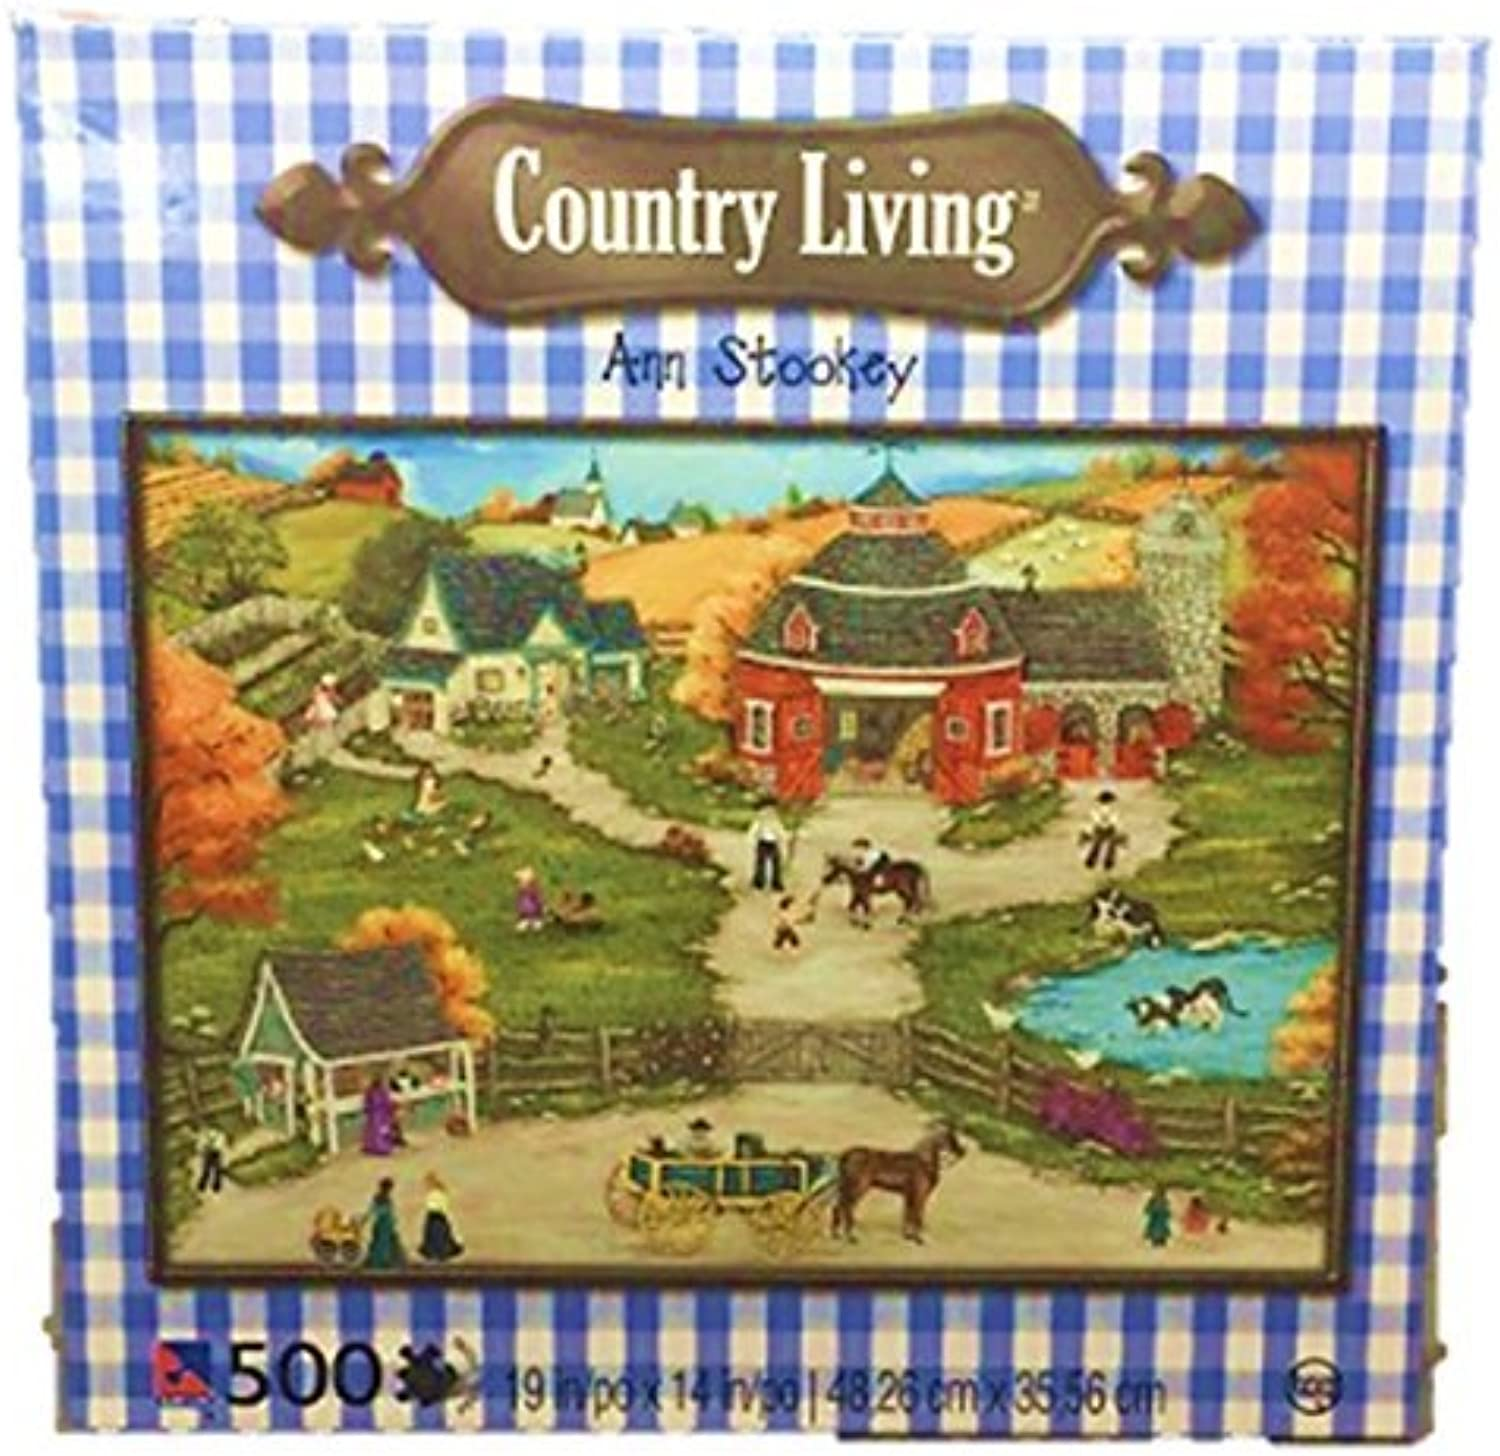 Ann Stookey Country Living 500 Piece Jigsaw Puzzle Grandpa's Barn Yard by SureLox